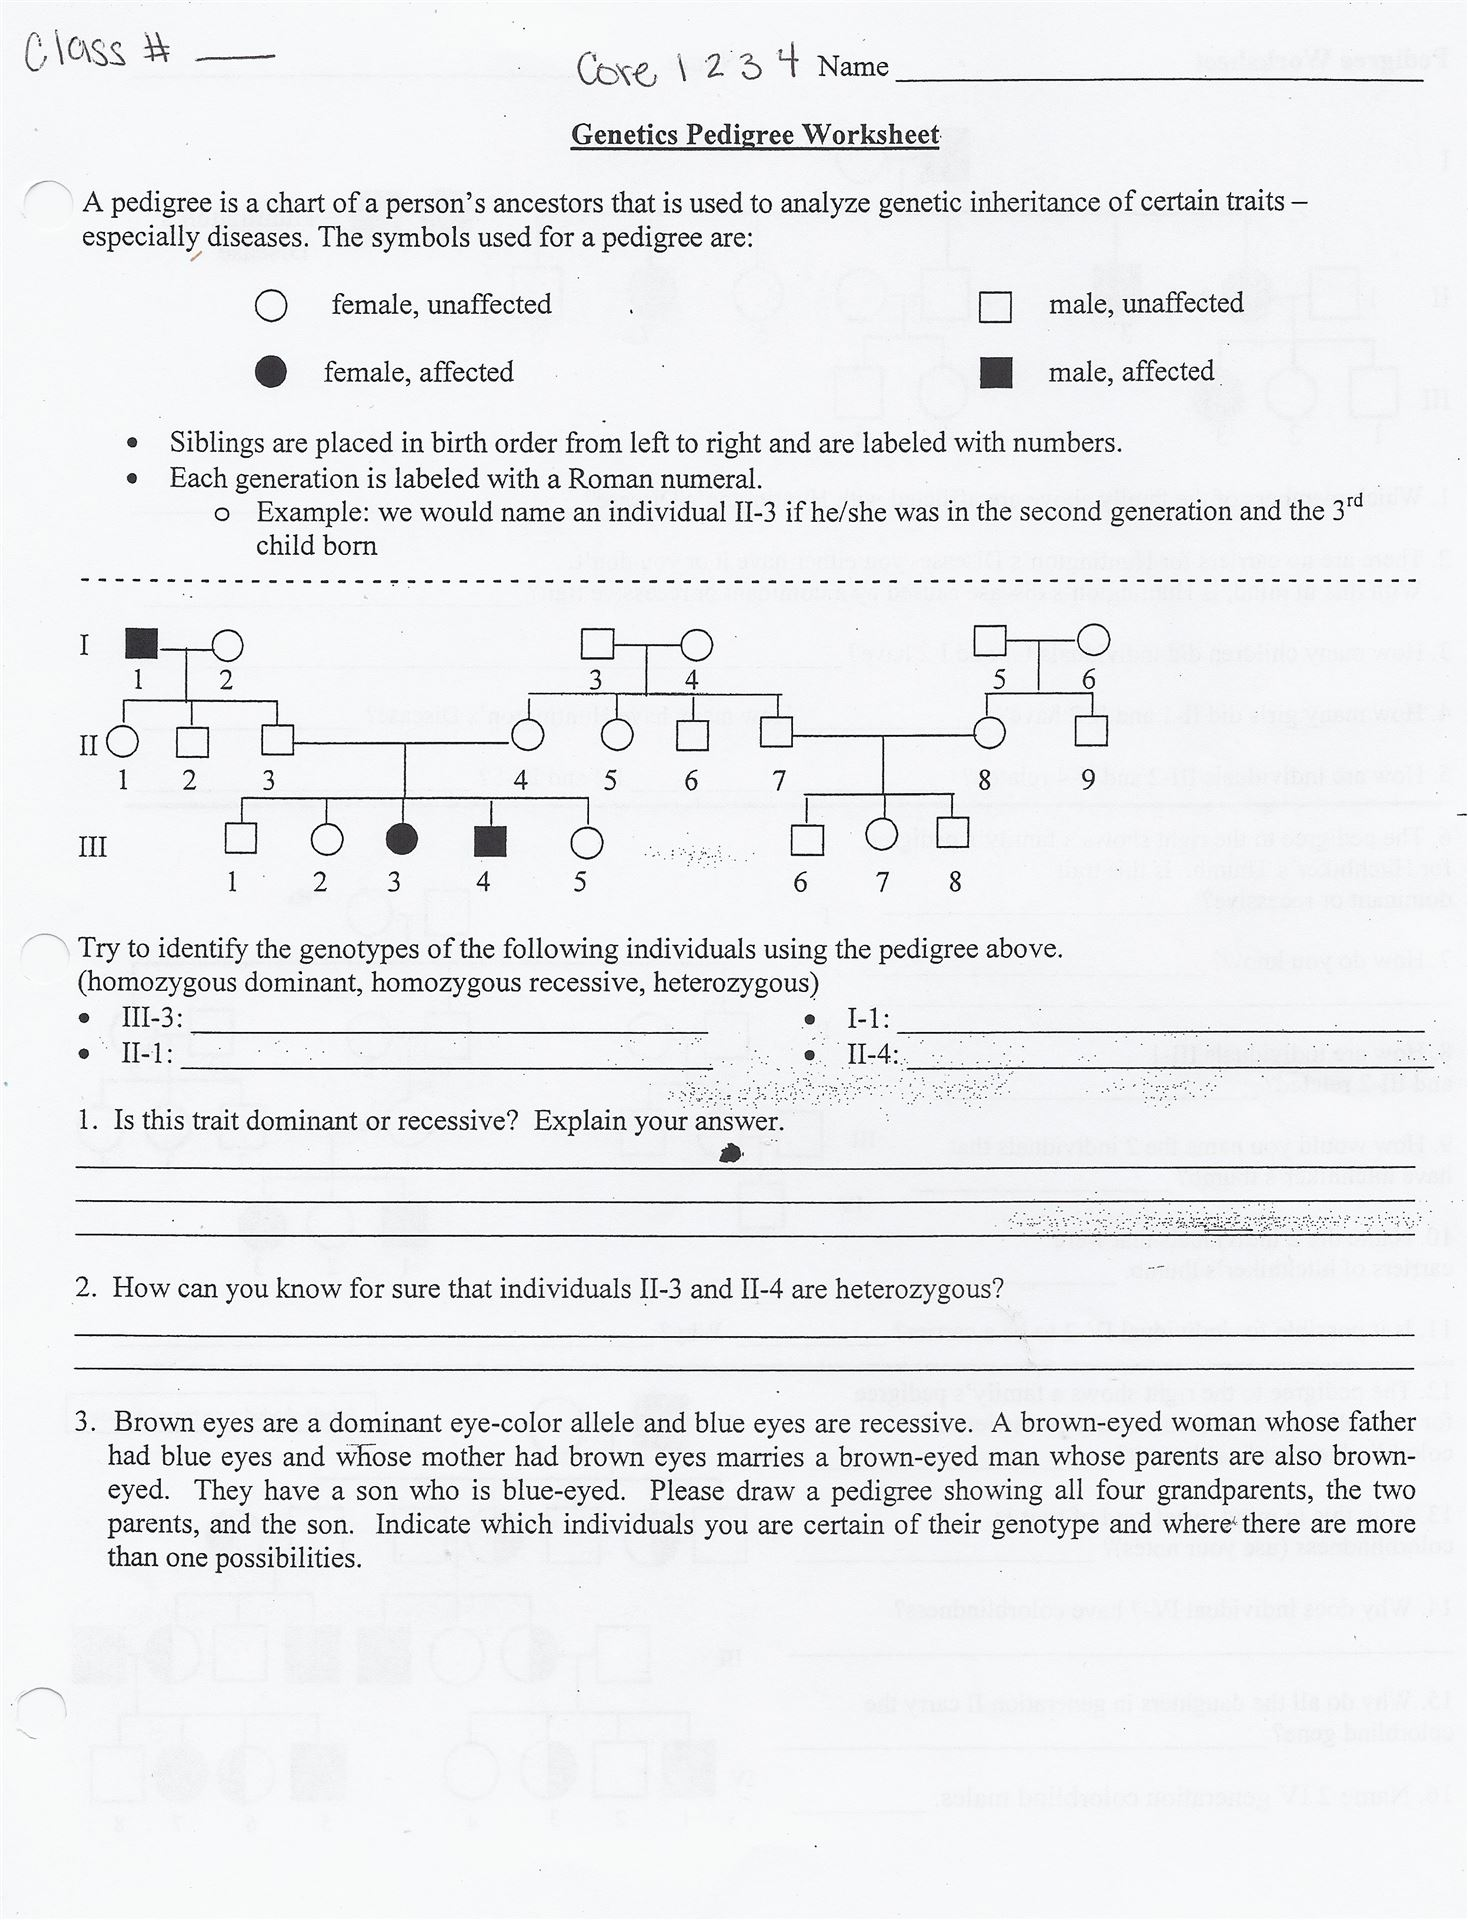 Pedigree worksheet answer key